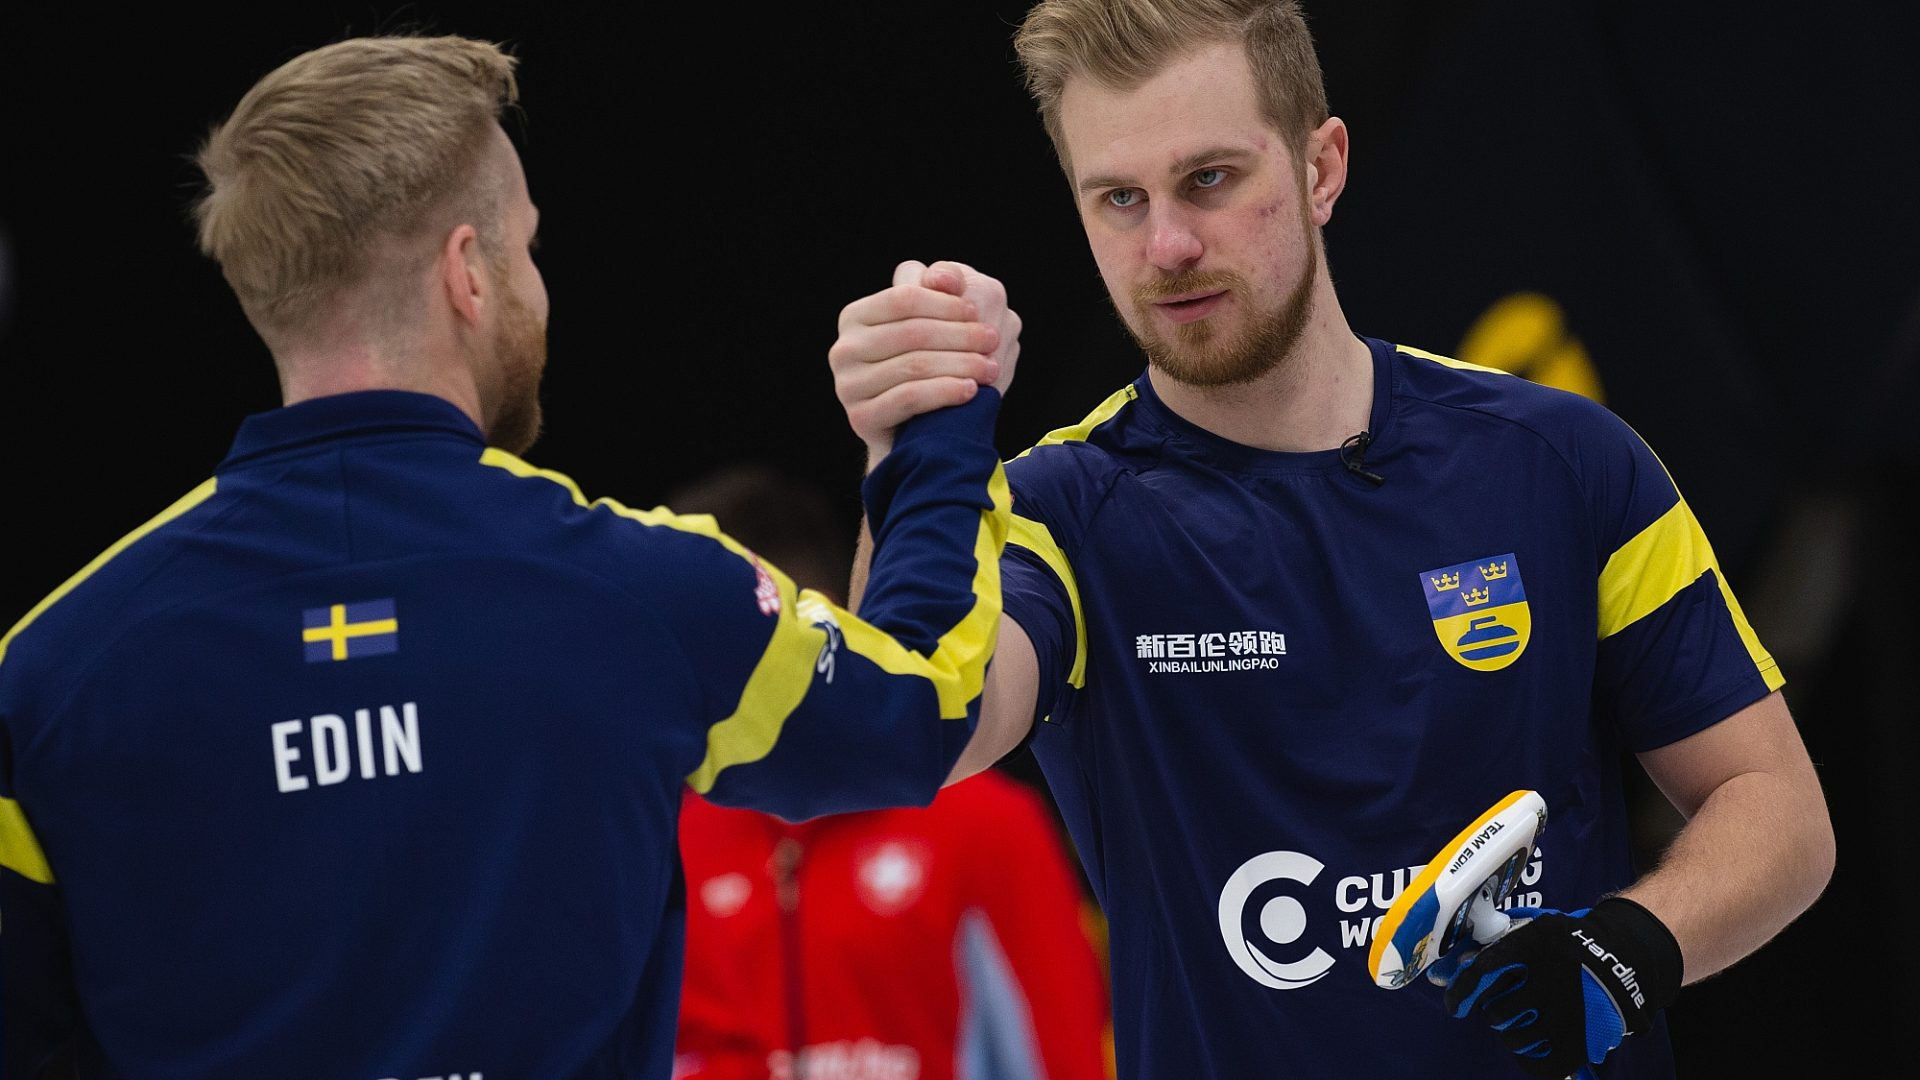 Sweden won both men's and women's titles at the last edition of the European Curling Championships in 2019 ©WCF